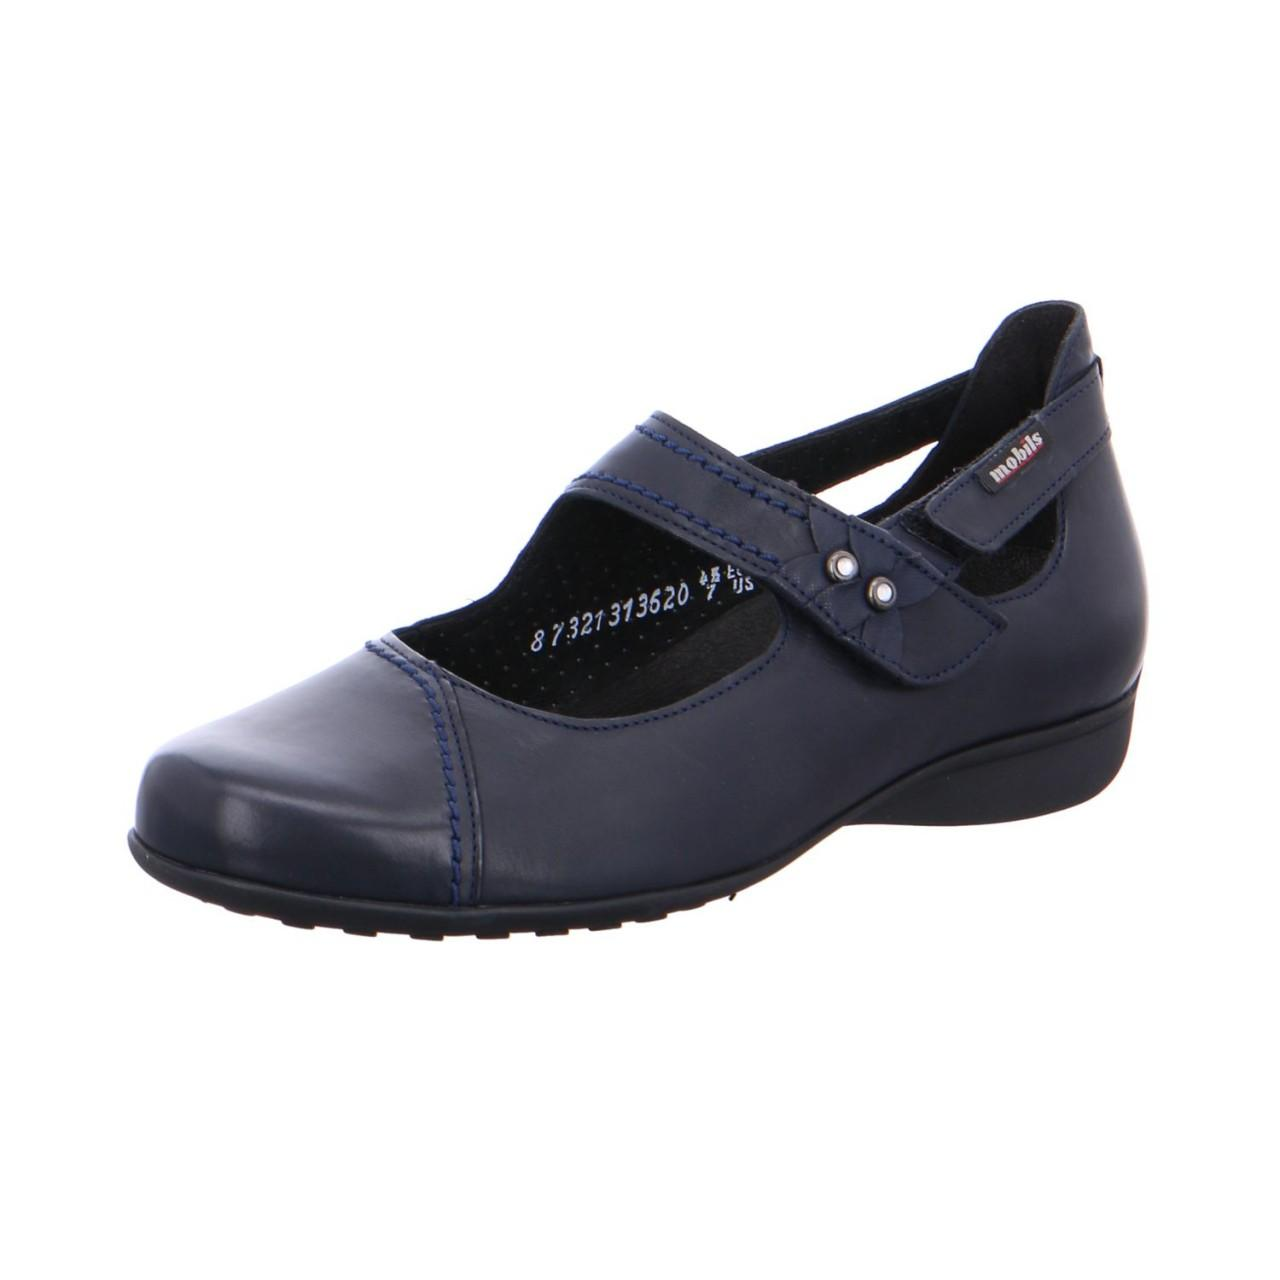 ede856635f9 Mobils By Mephisto Wo Ballerina Shoes Blue Navy in Blue - Lyst